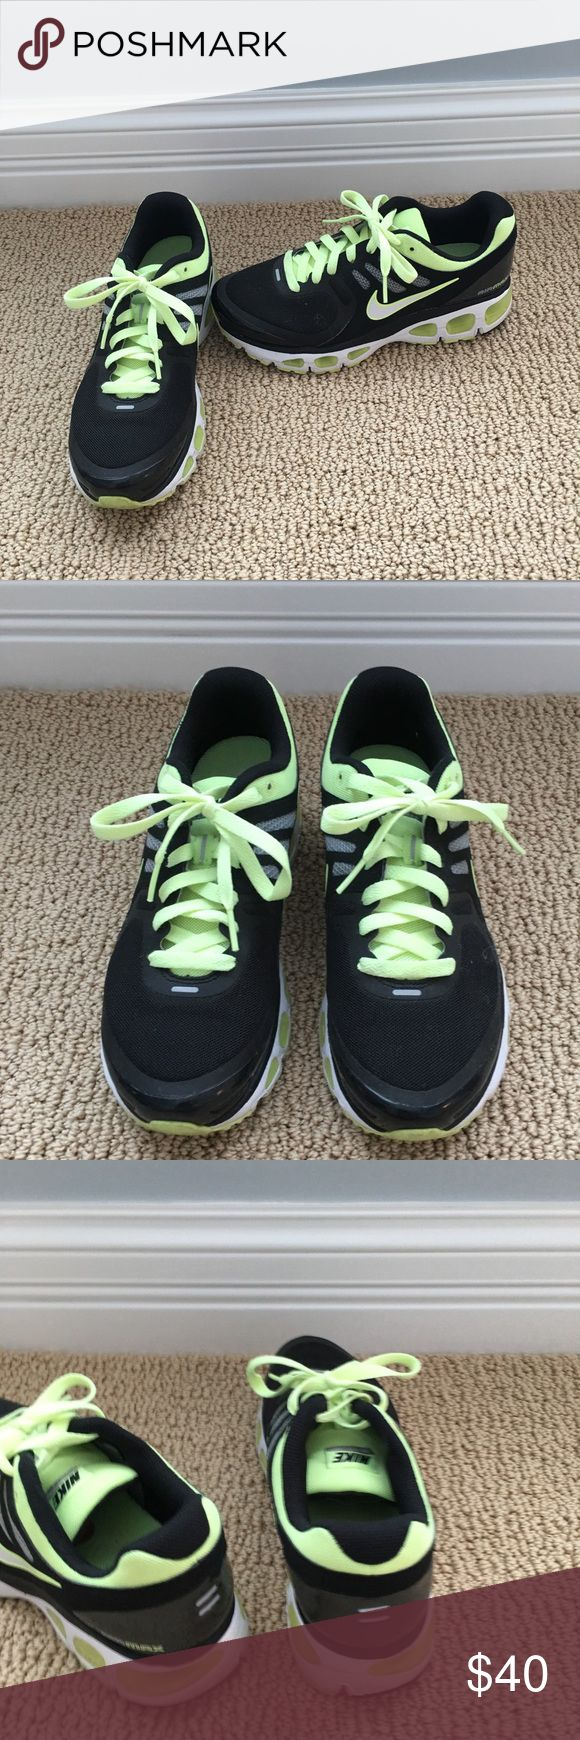 Women's Nike shoes size 8 Women's Nike air shoes size 8. Great condition! Nike Shoes Athletic Shoes